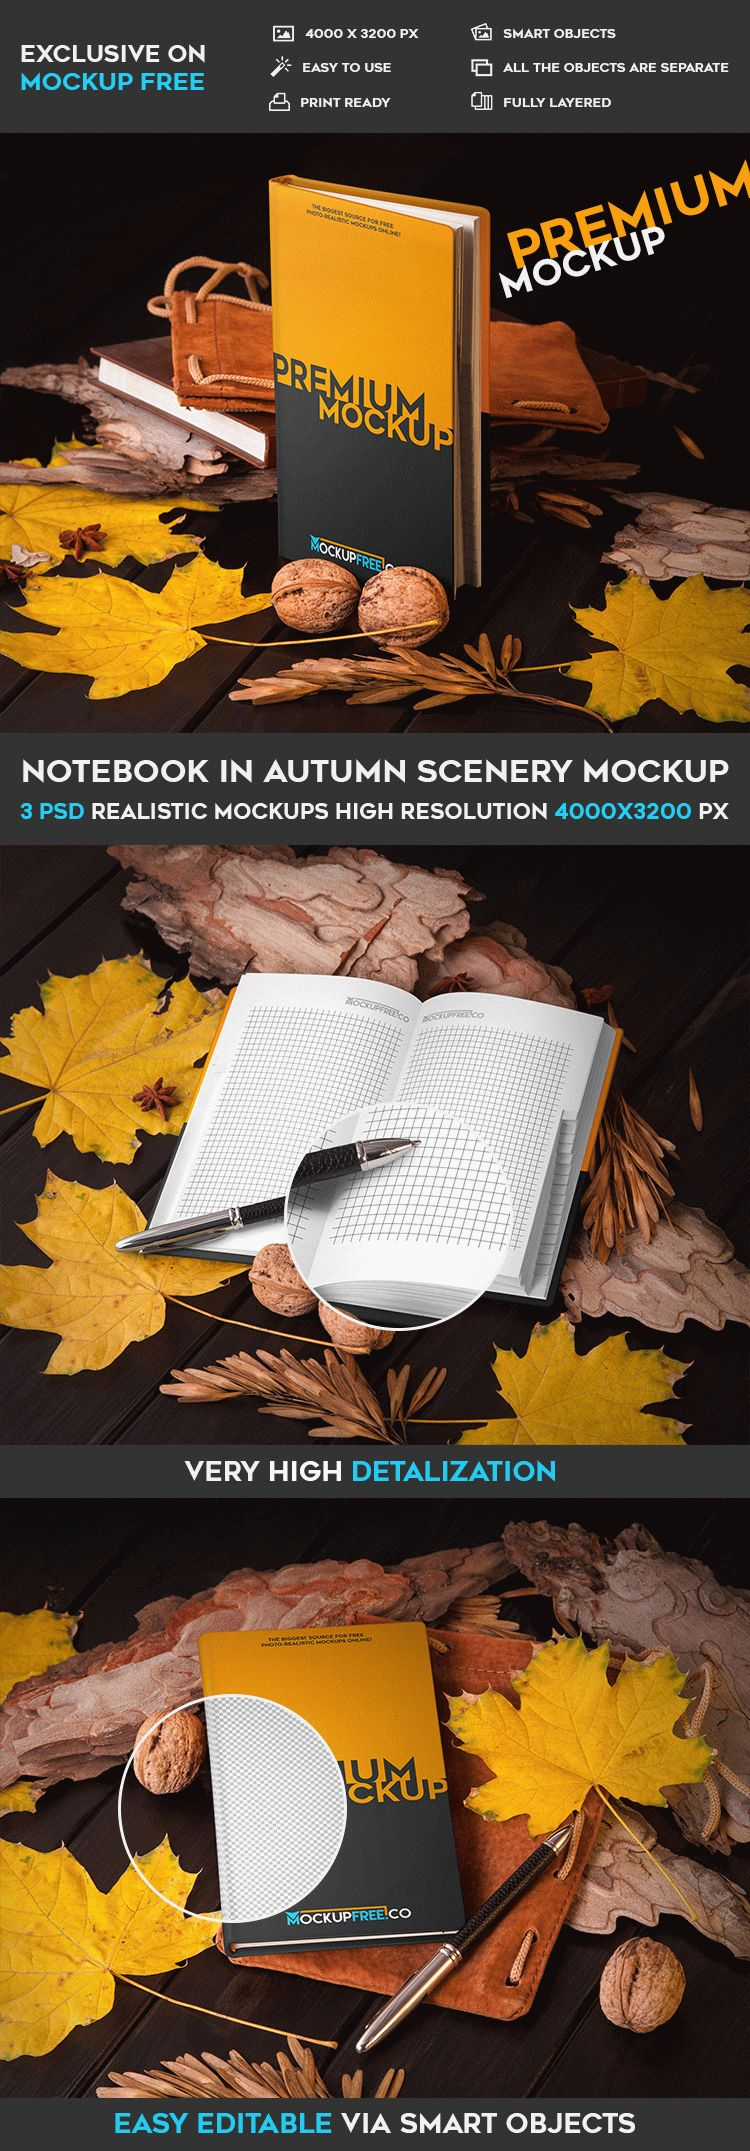 bigpreview_notebook-autumn-scenery-premium-psd-mockup